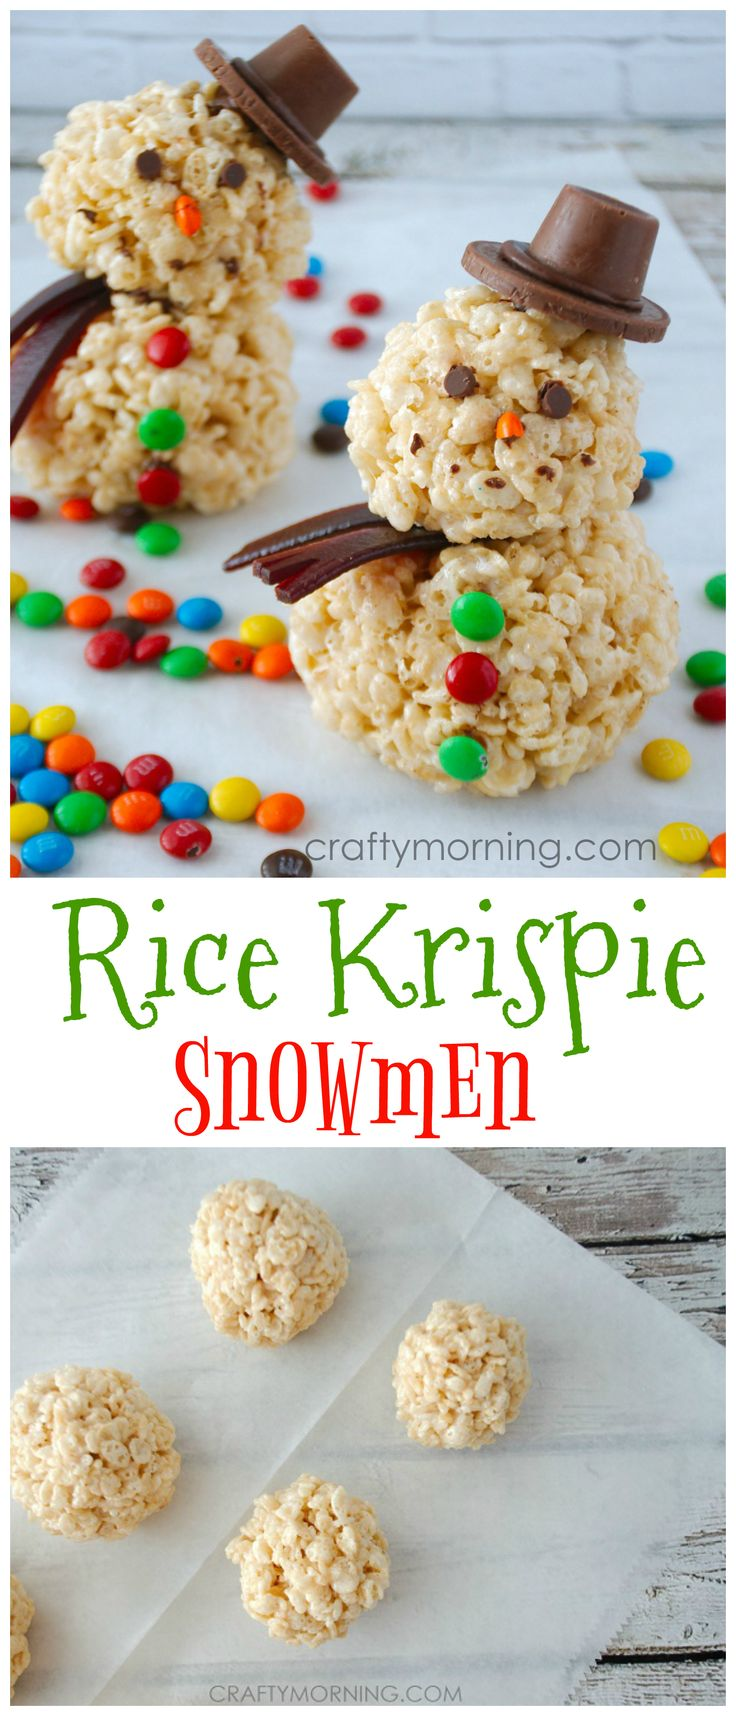 Love these rice krispie snowmen treats for Christmas!! So easy to make with the kids.